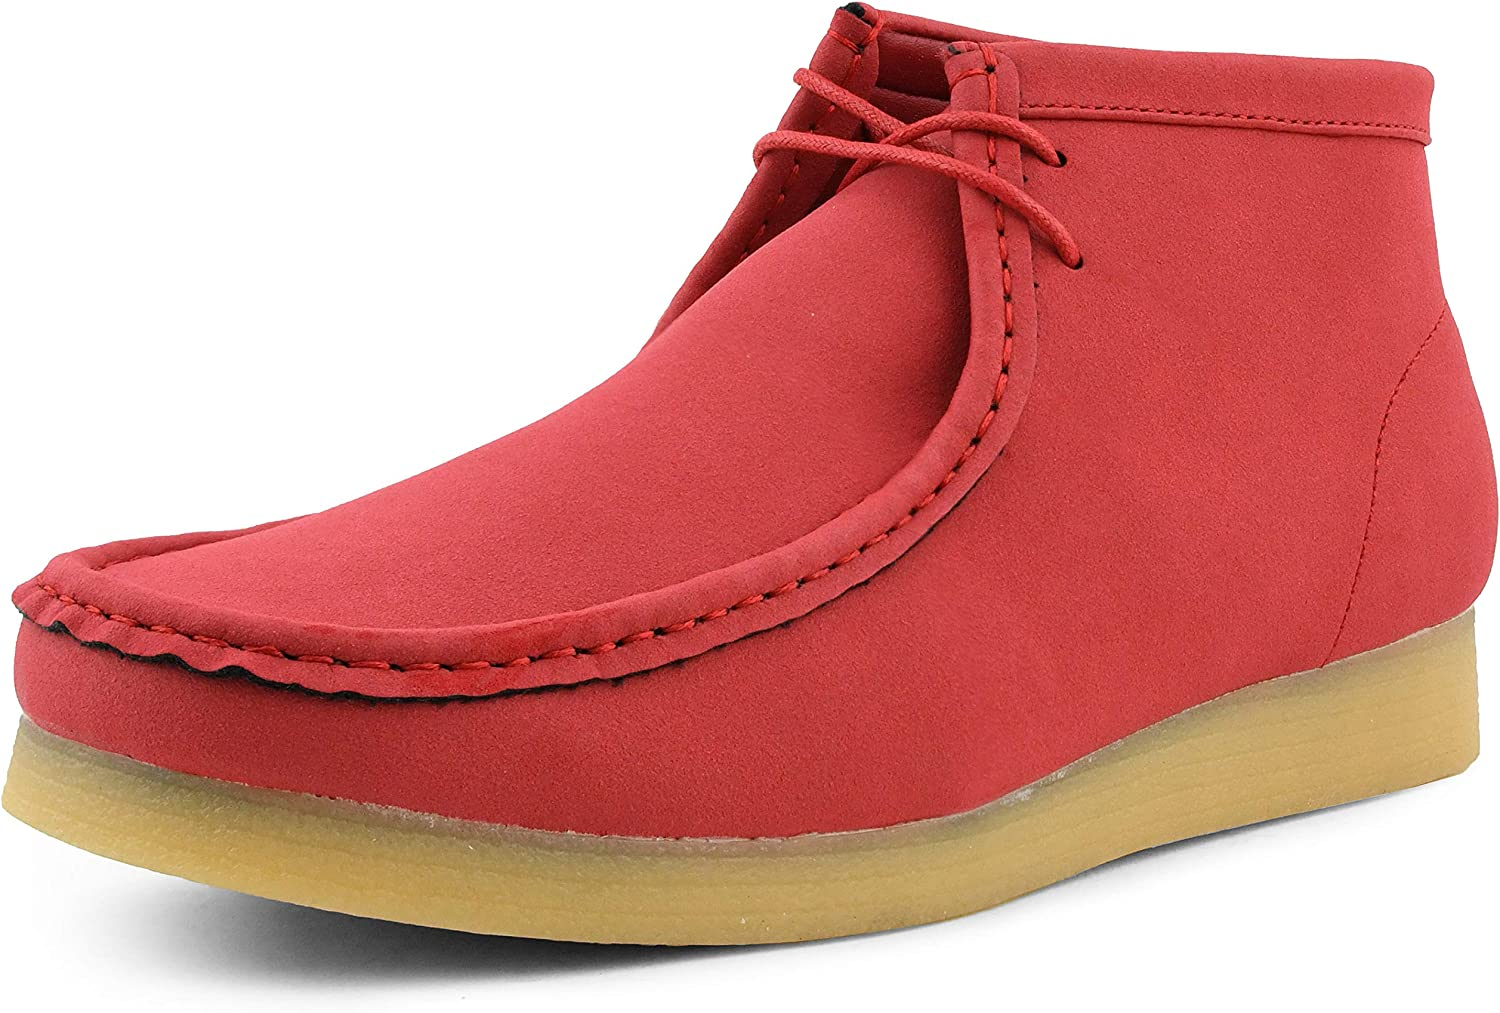 Mens High Top Casual Boots Amali Jason2 Crepe Rubber Sole Manmade Suede Moc Toe Chukka Boots Mens Moc Toe Chukka Boots Lace Up Casual Boots